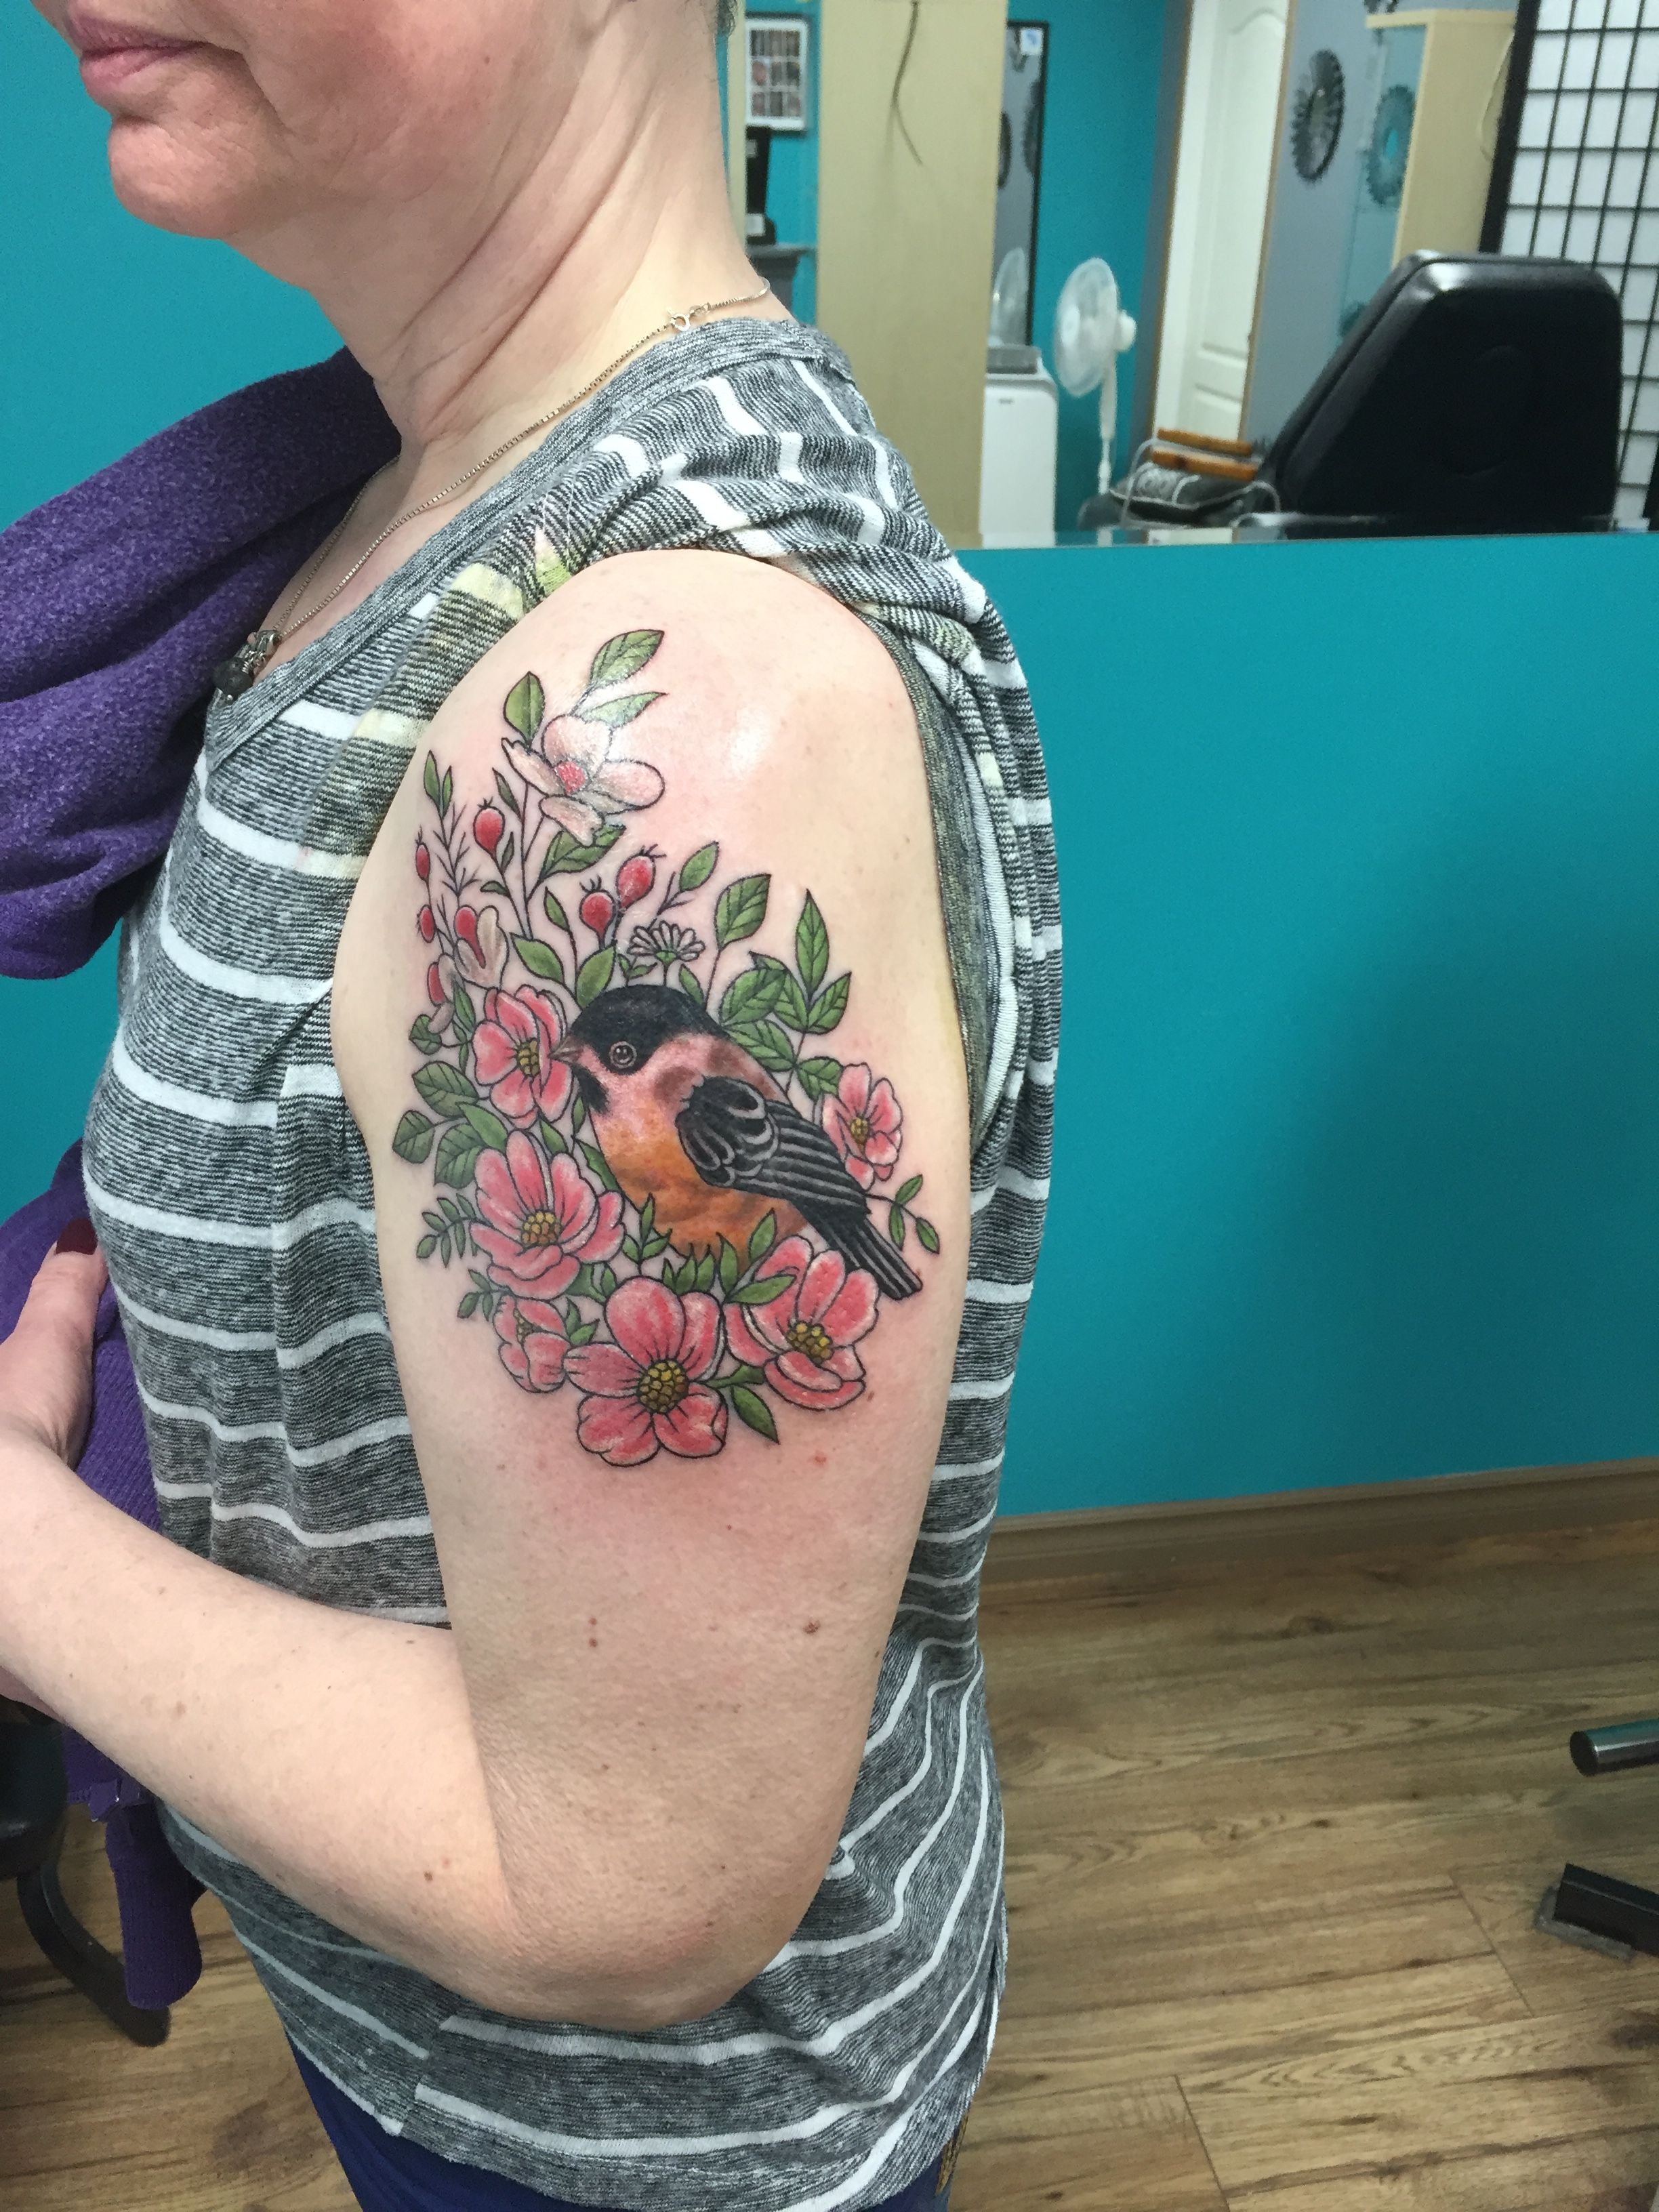 Beautiful Realistic Chickadee Tattoo By Australian Realism: Chickadee And Flowers Tattoo Done By Syl From Nautical Ink